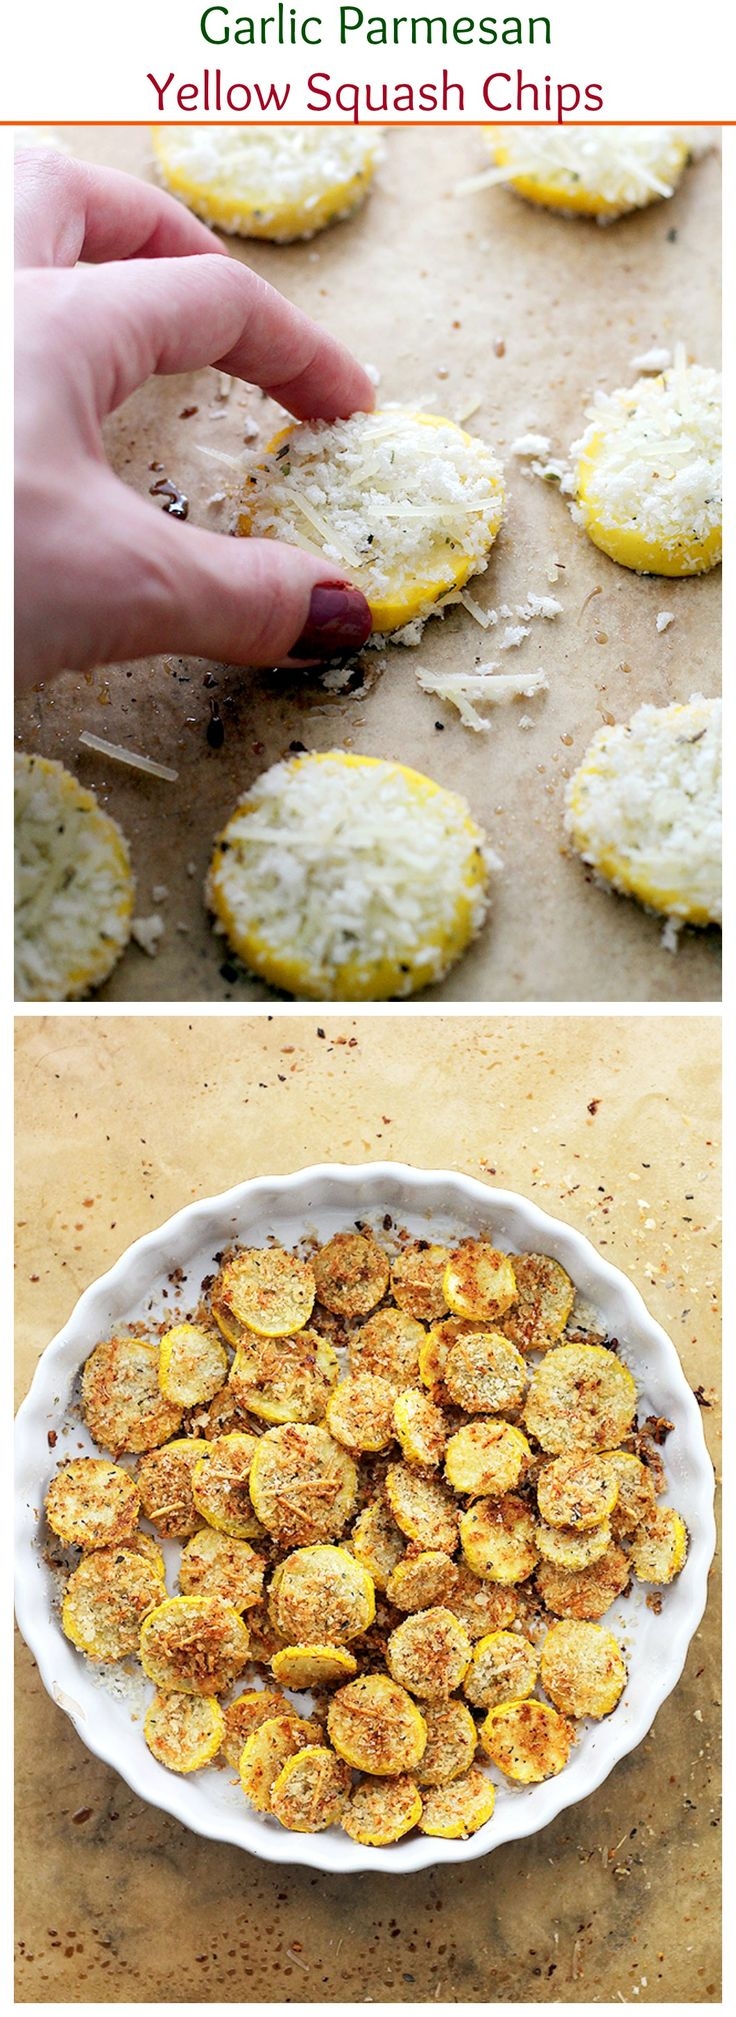 Garlic Parmesan Yellow Squash Chips - A healthy snack that is incredibly flavorful, crispy, and absolutely delicious!